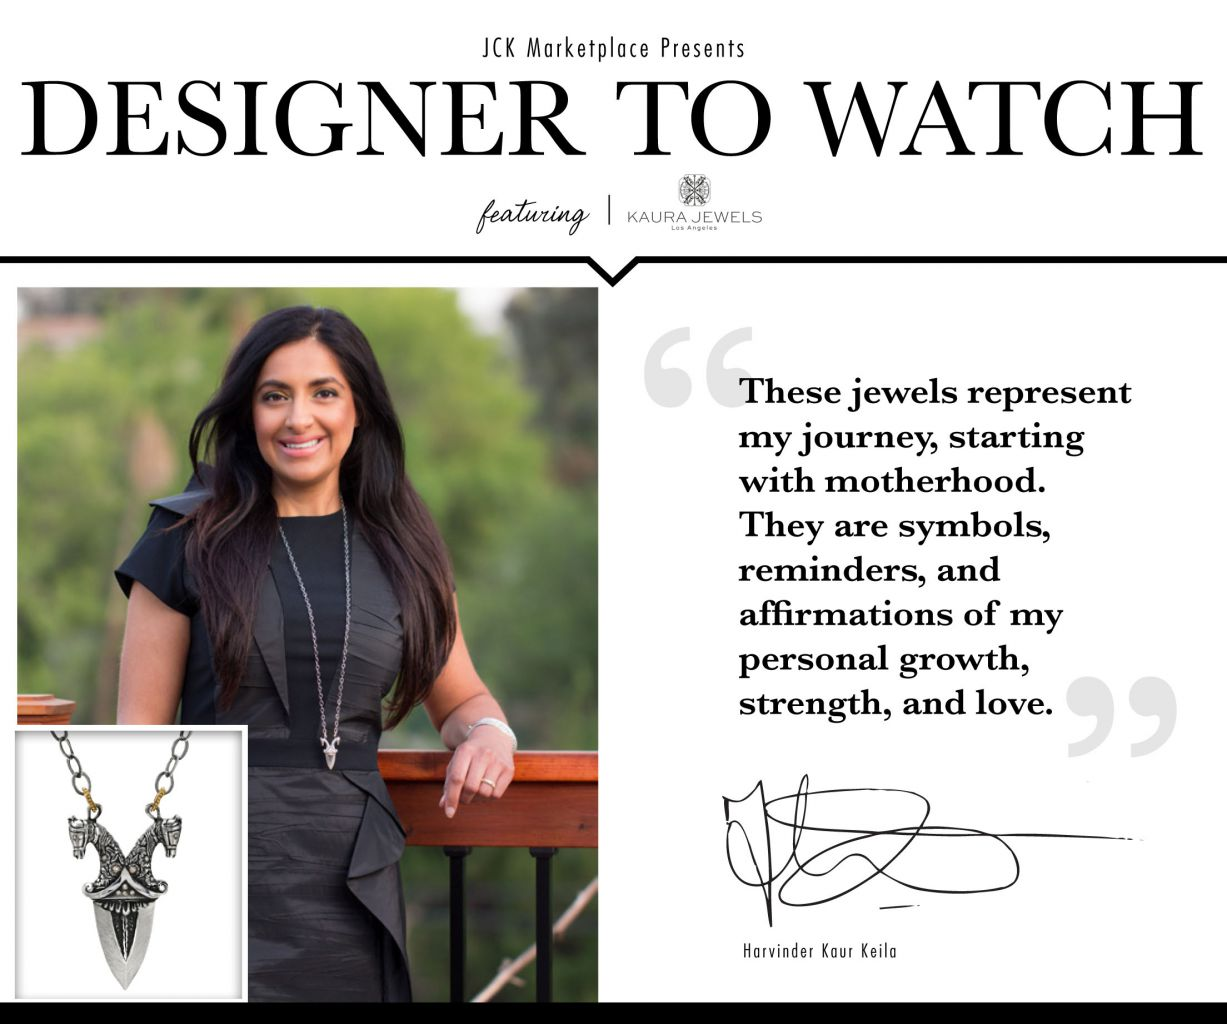 Designer to Watch Kaura Jewels lead image